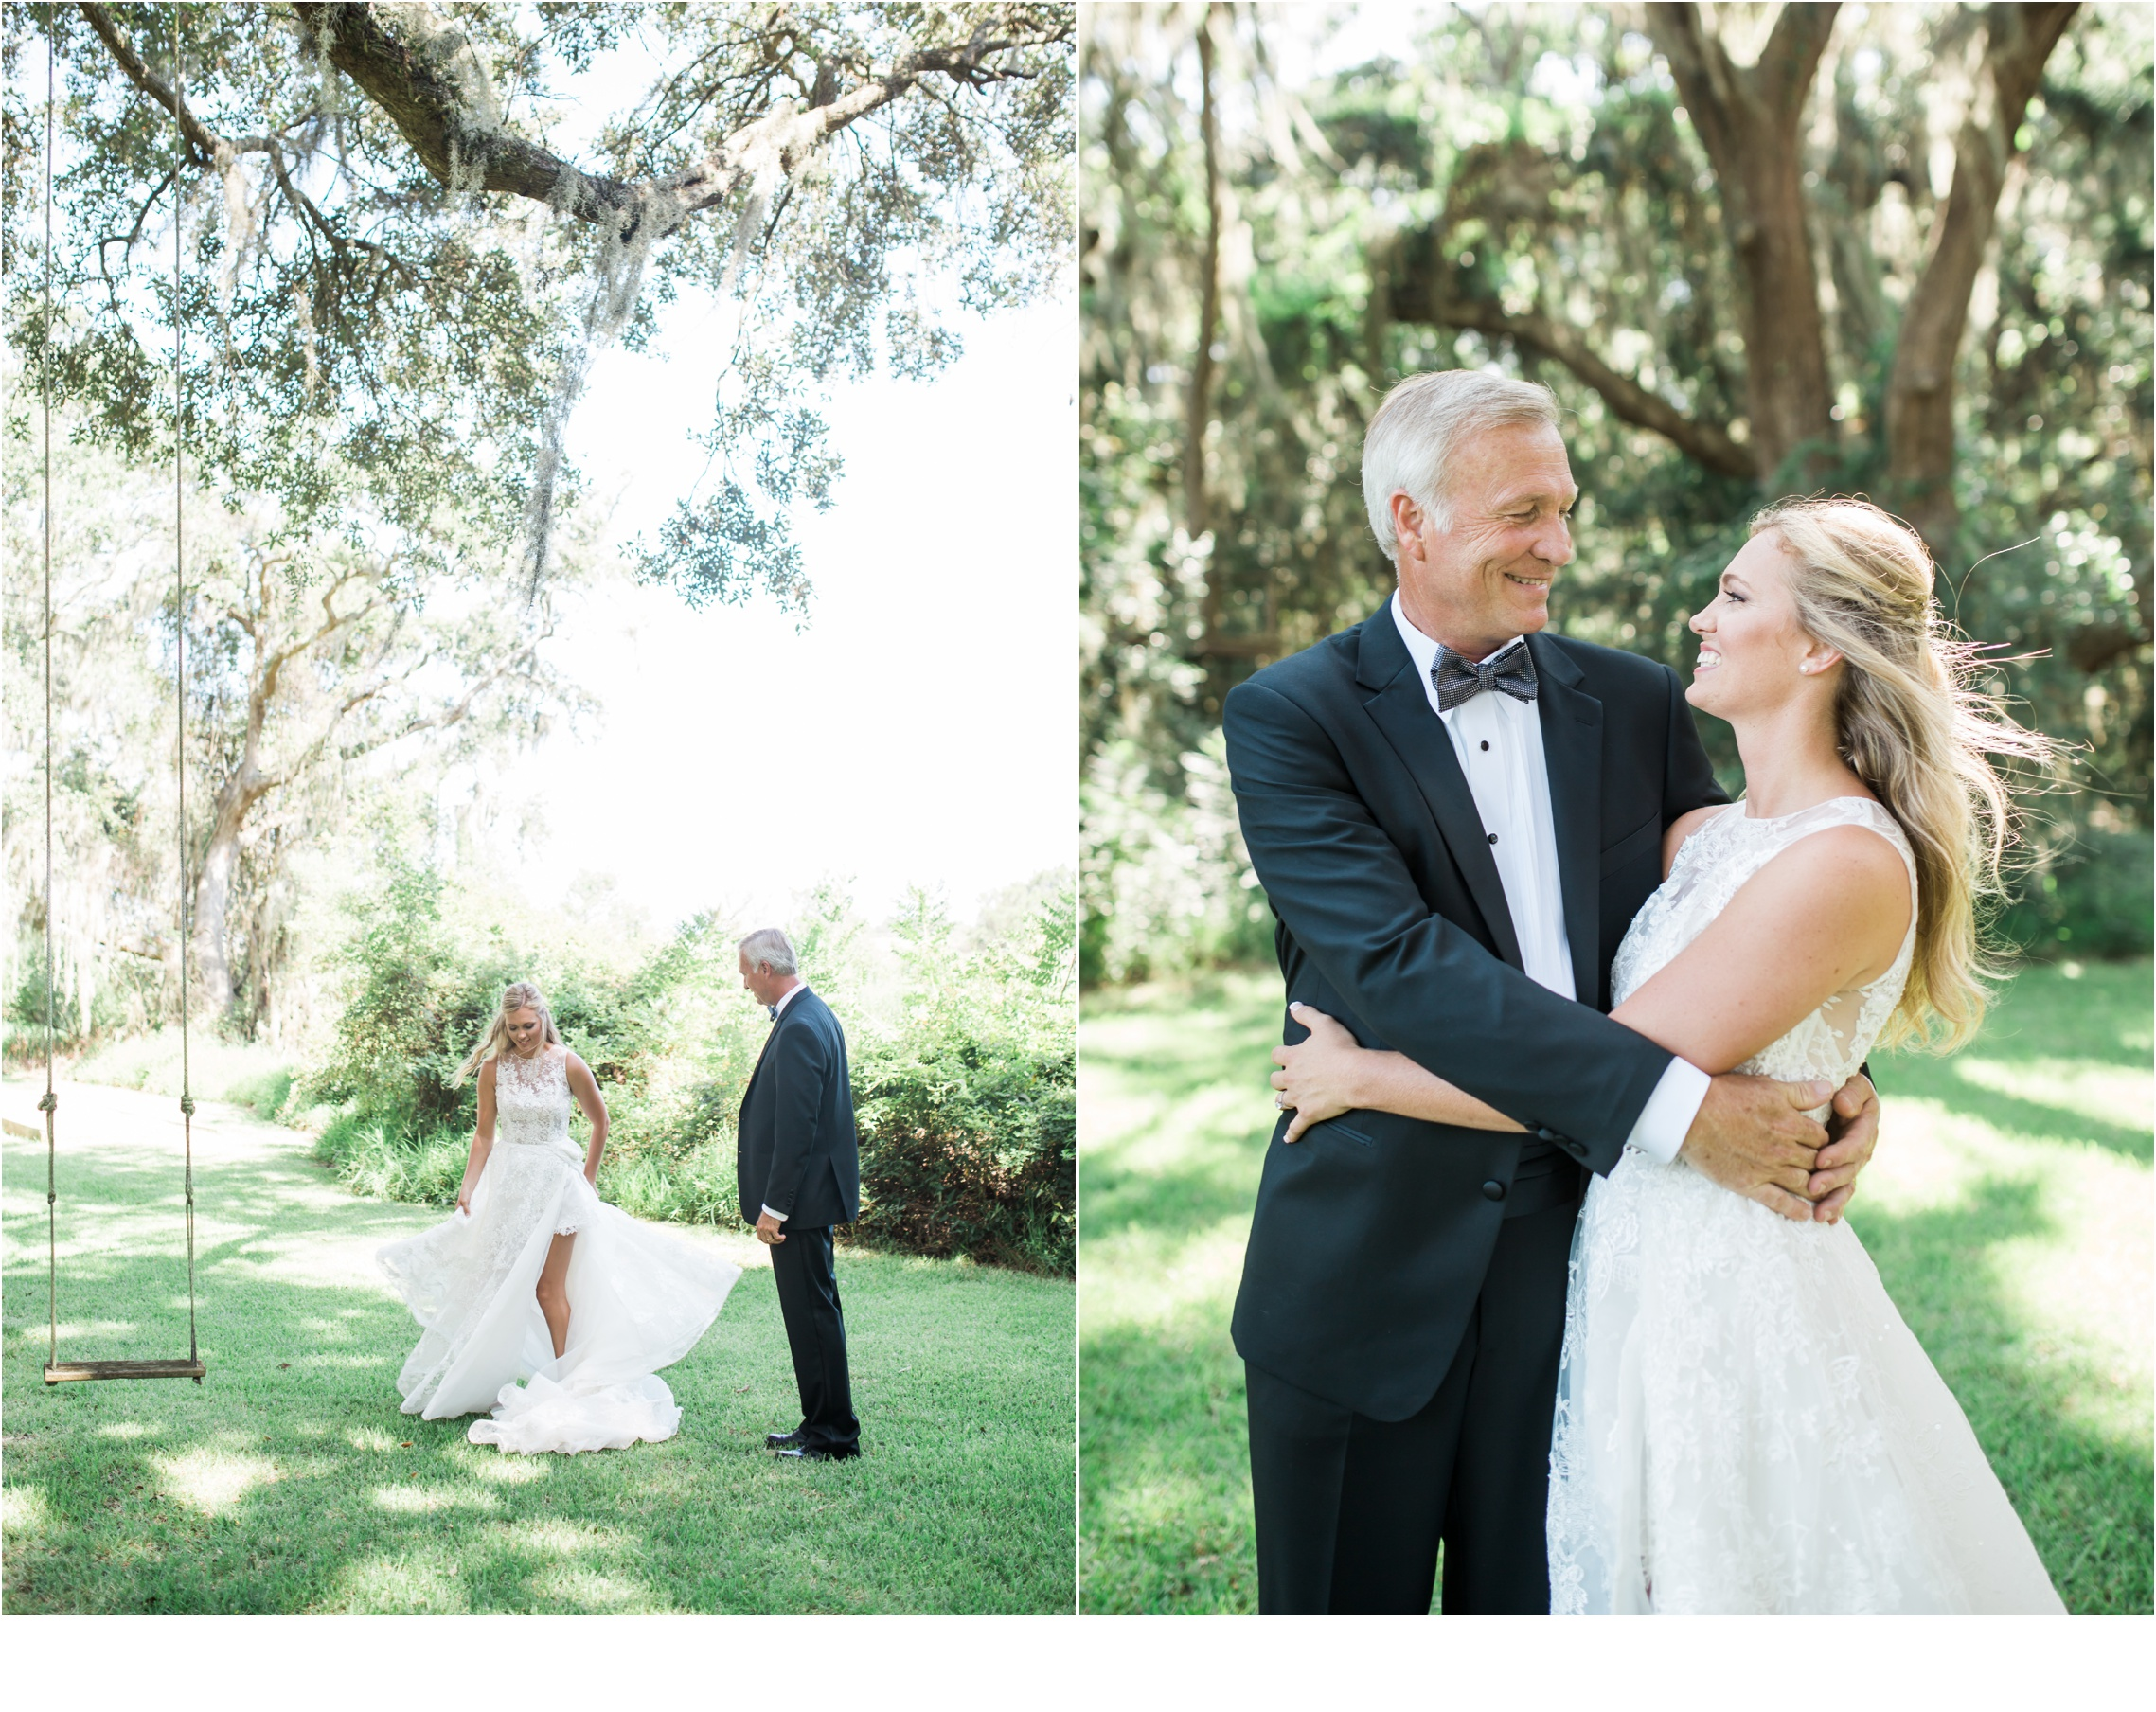 Rainey_Gregg_Photography_St._Simons_Island_Georgia_California_Wedding_Portrait_Photography_0059.jpg